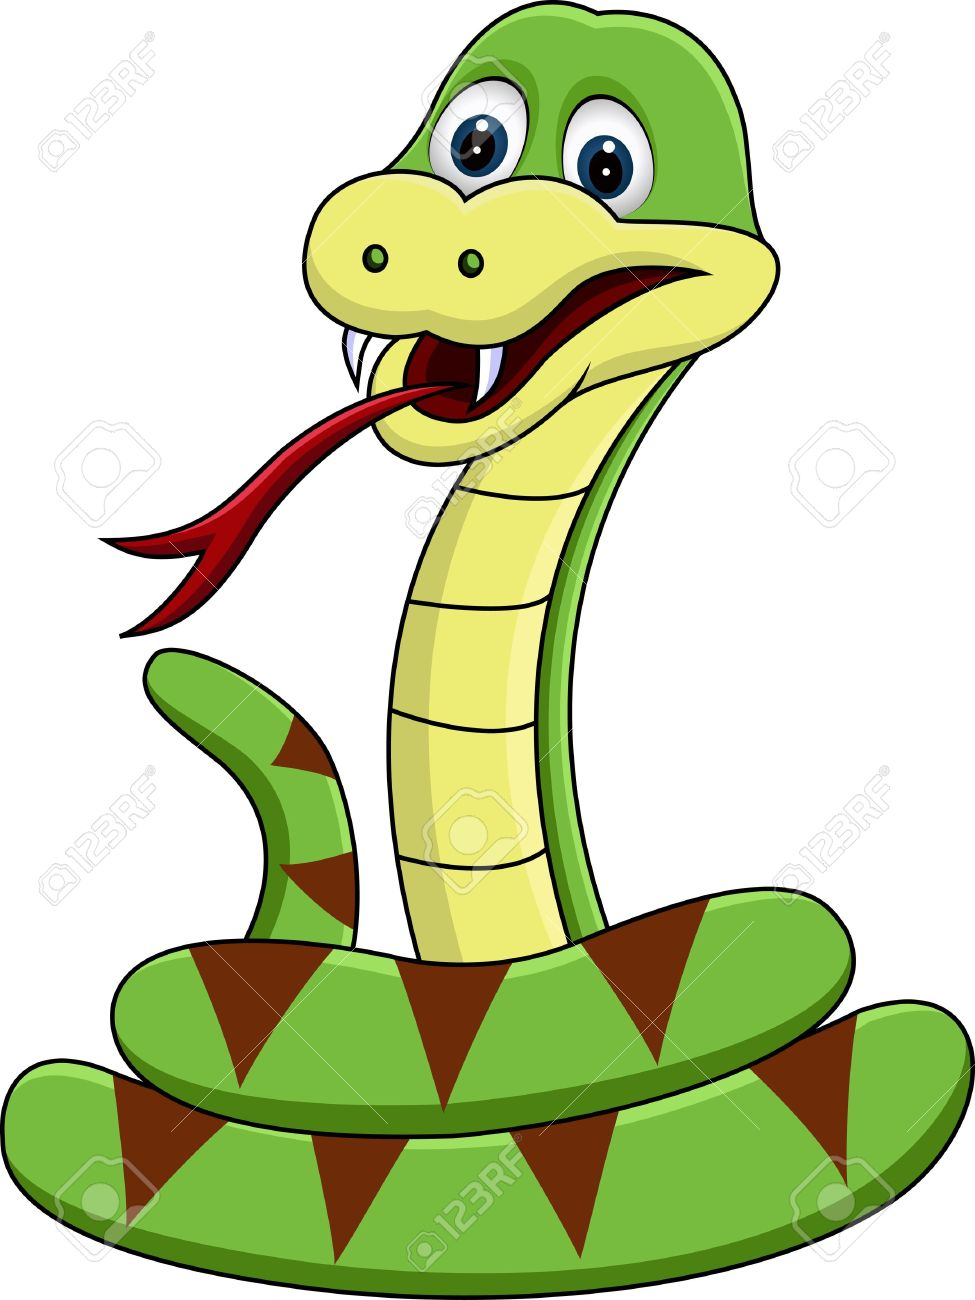 Serpent clipart svg free Best Snake Clipart #9310 - Clipartion.com svg free